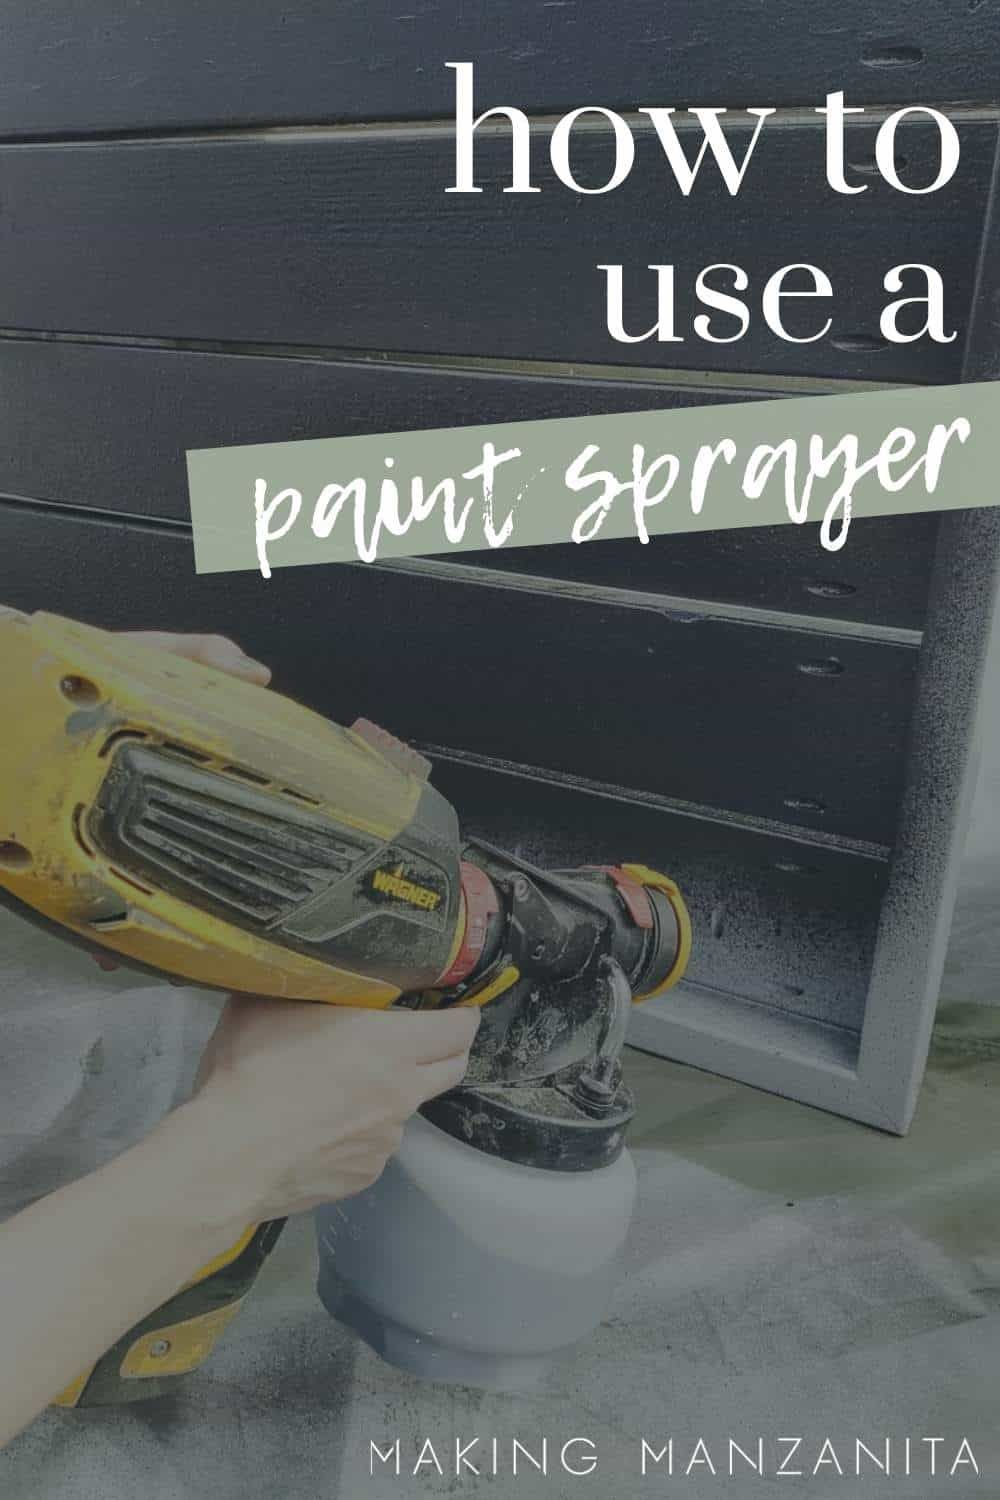 How To Use A Paint Sprayer In 2020 Using A Paint Sprayer Paint Sprayer Walls Paint Sprayer